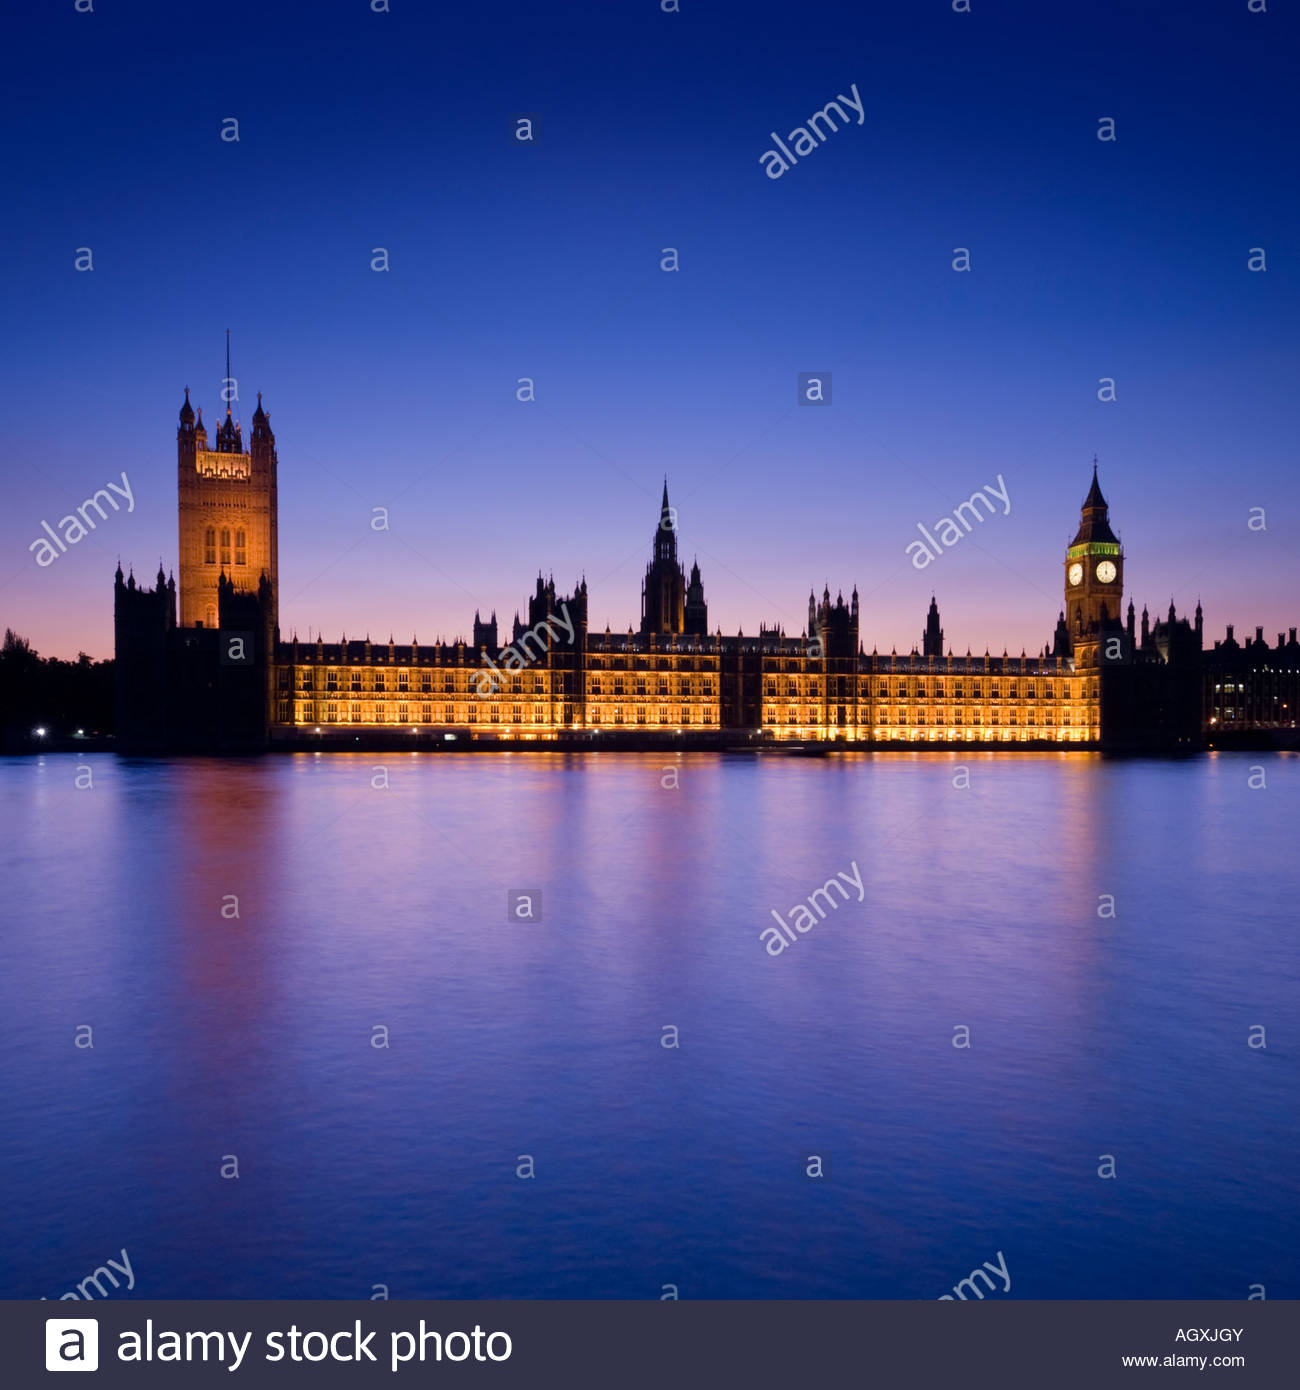 Les chambres du Parlement et Big Ben de nuit, London, England, UK Photo Stock